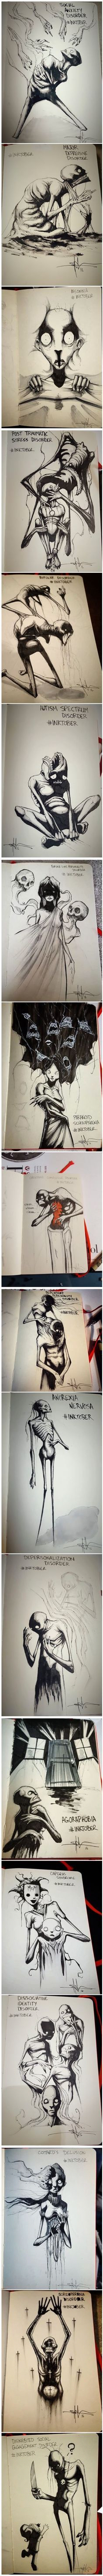 Artist Shawn Coss Illustrates Mental Illness And Disorders - 9GAG